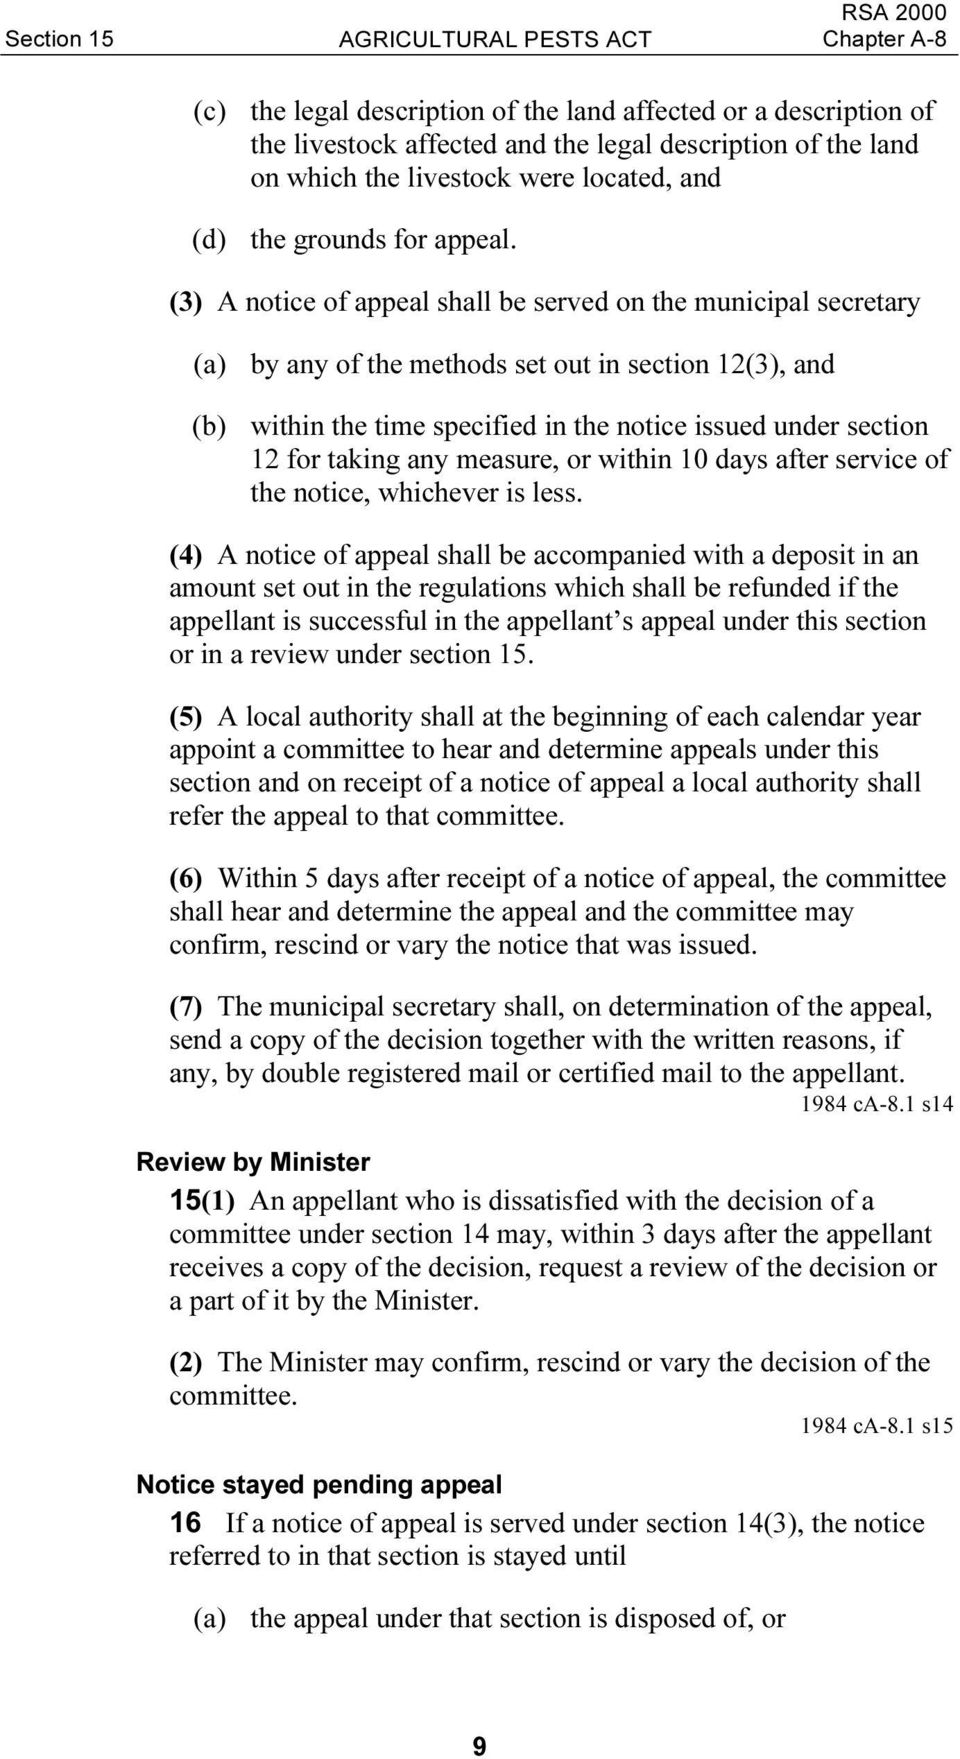 (3) A notice of appeal shall be served on the municipal secretary (a) by any of the methods set out in section 12(3), and (b) within the time specified in the notice issued under section 12 for